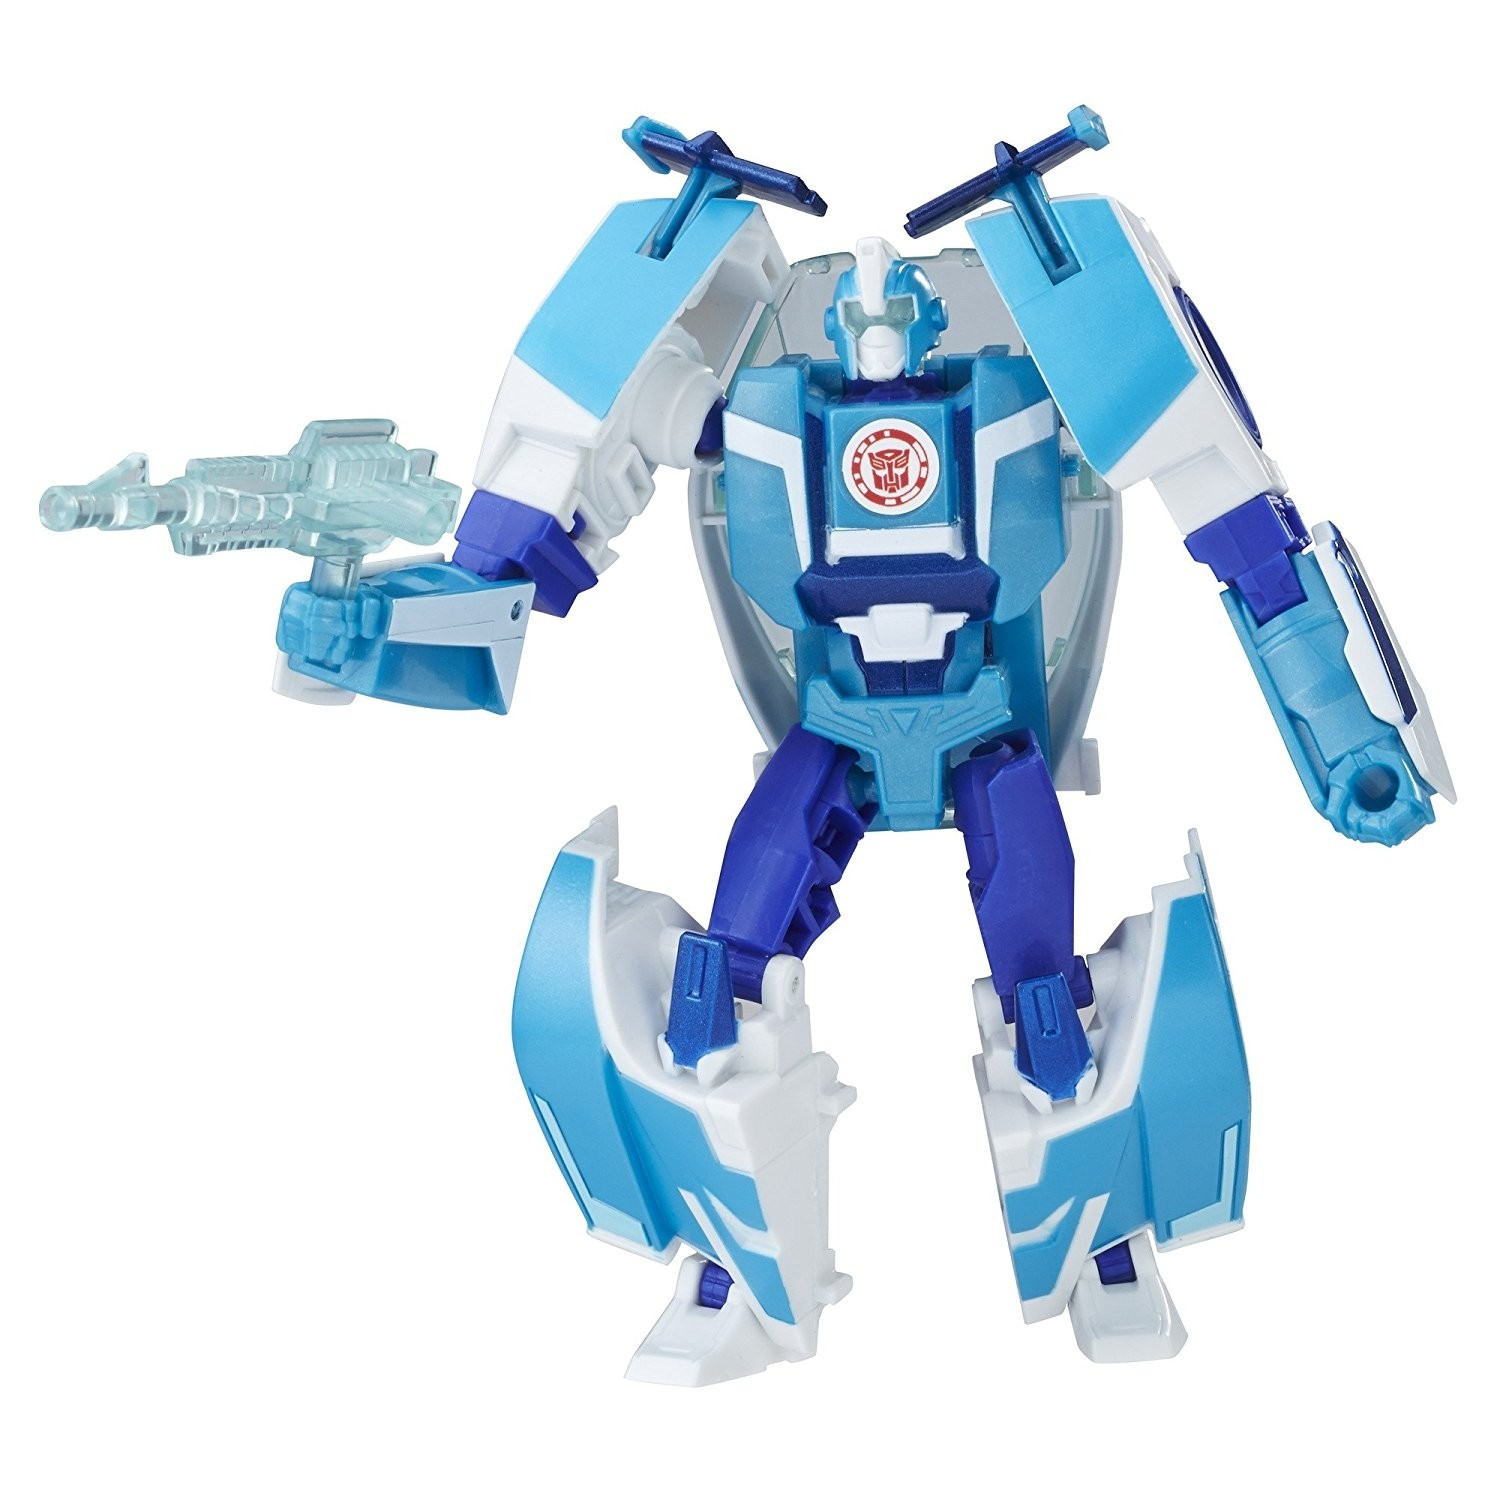 Toy Transformers Disguise Robots Bashbreaker